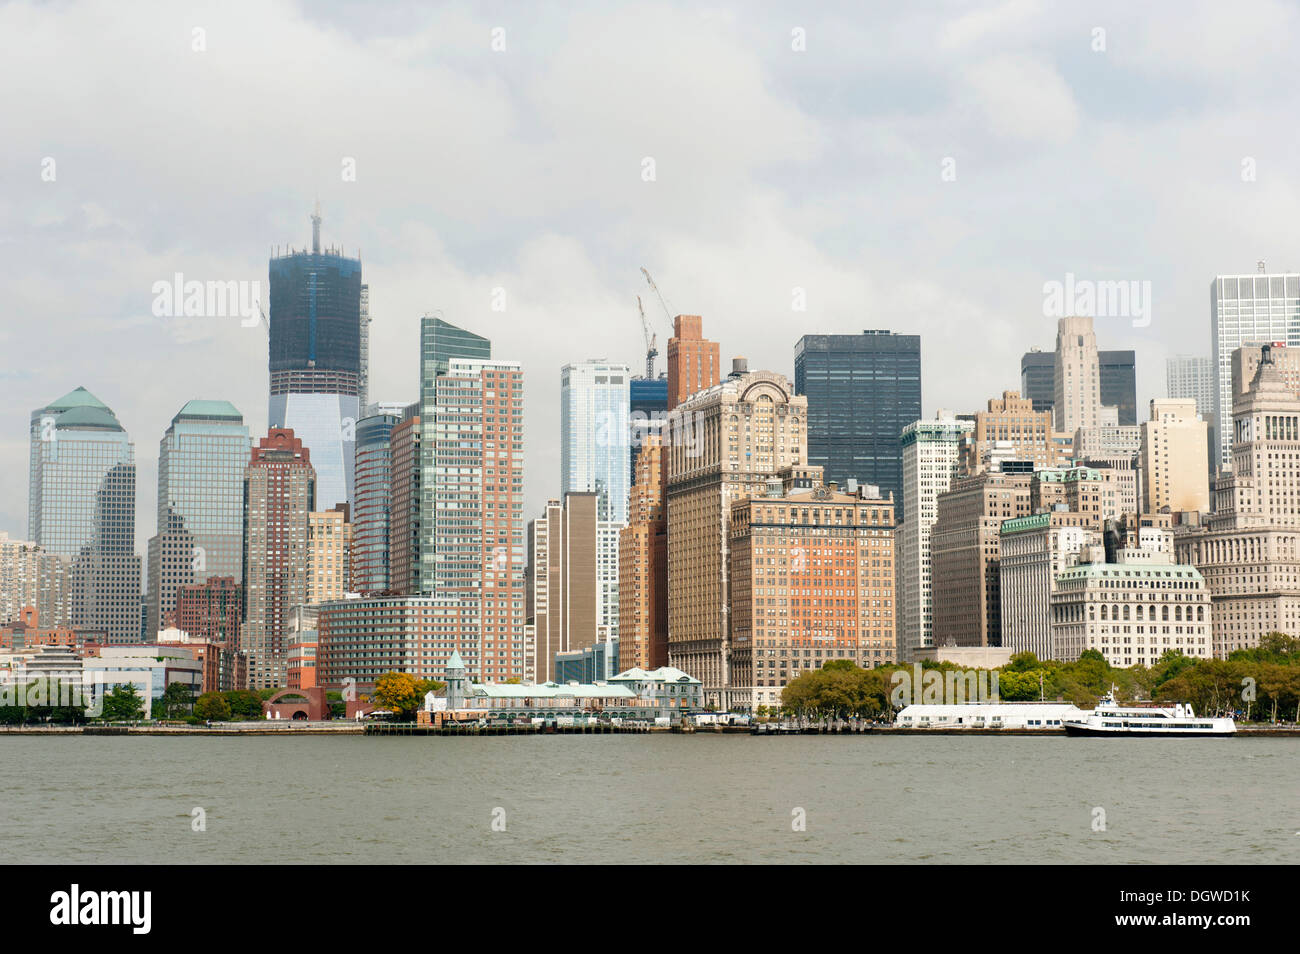 Metropolis, view of high-rise buildings and skyline, Financial District, Battery Park, One World Trade Center under Stock Photo